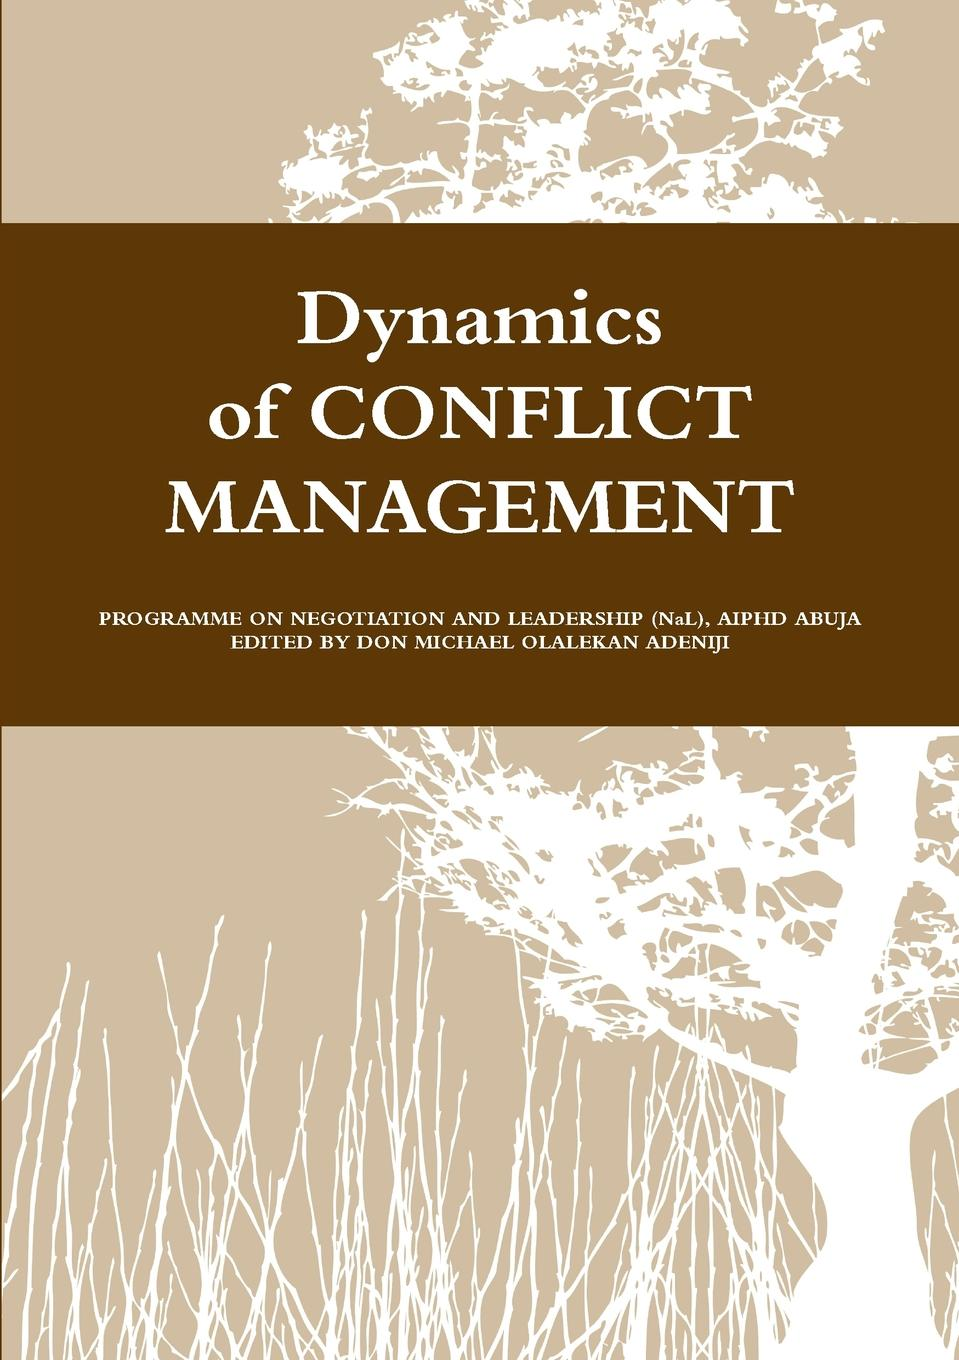 AFRICAN INITIATIVE DYNAMICS OF CONFLICT MANAGEMENT I bernard mayer the dynamics of conflict a guide to engagement and intervention